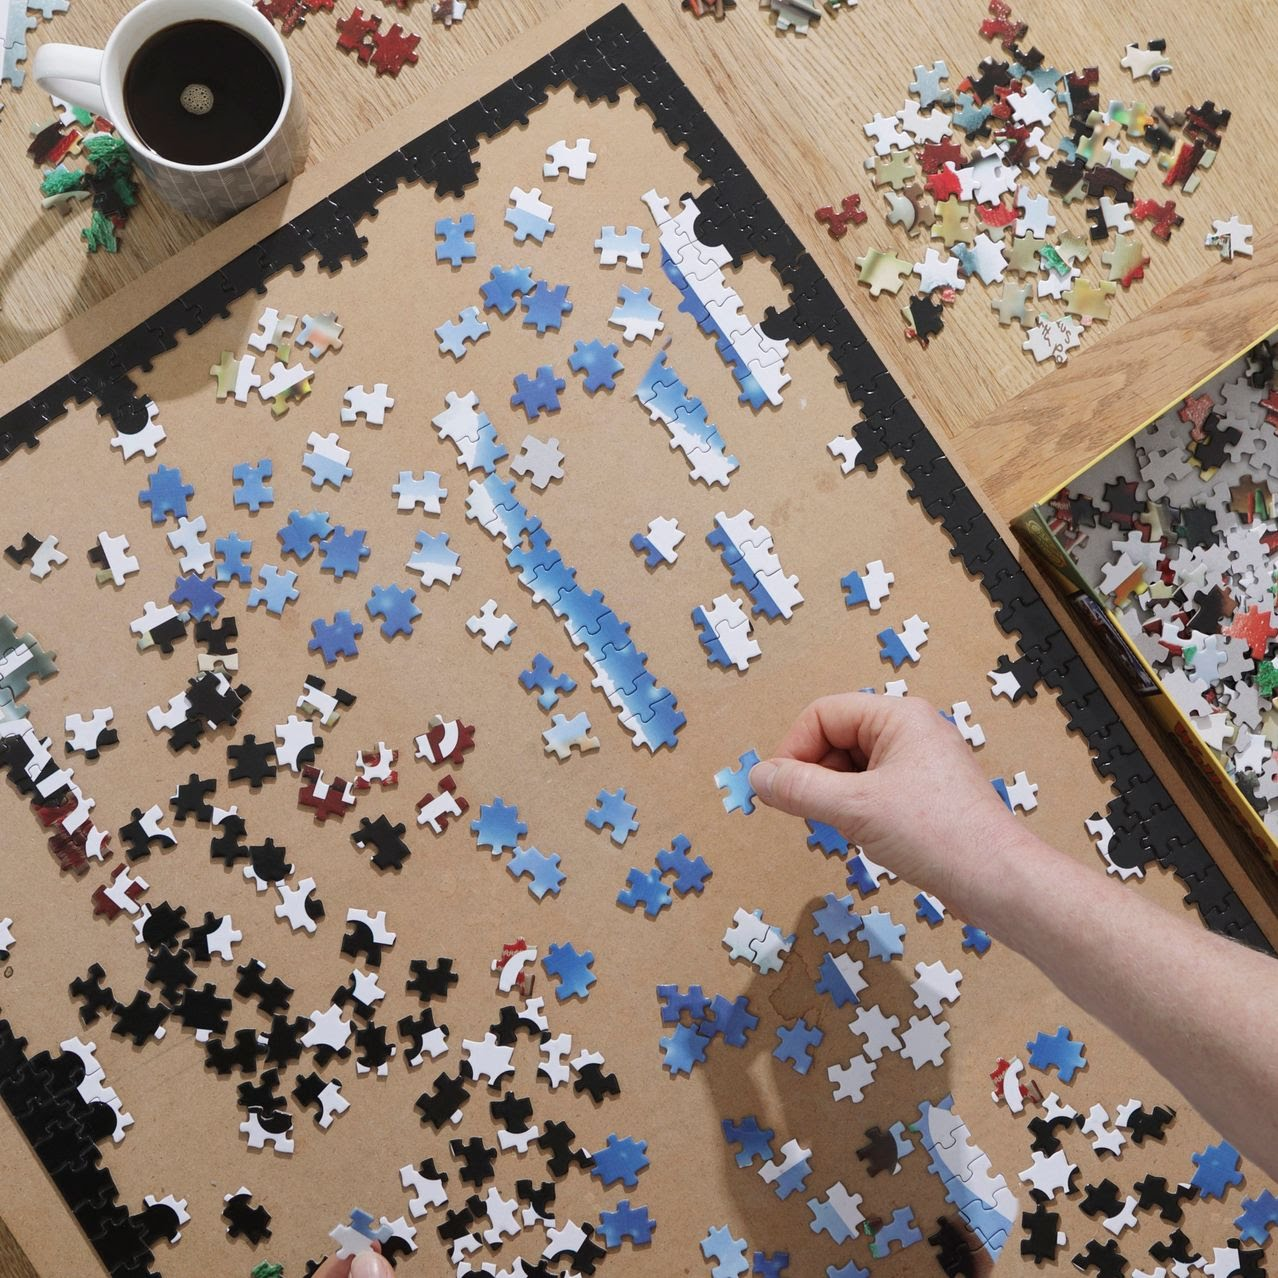 Coronavirus Means Everyone Wants Jigsaw Puzzles. Good Luck Buying One. Demand has taken off, but the world's largest maker finds itself with fewer ways to get puzzles to puzzlers By Michael M. Phillips